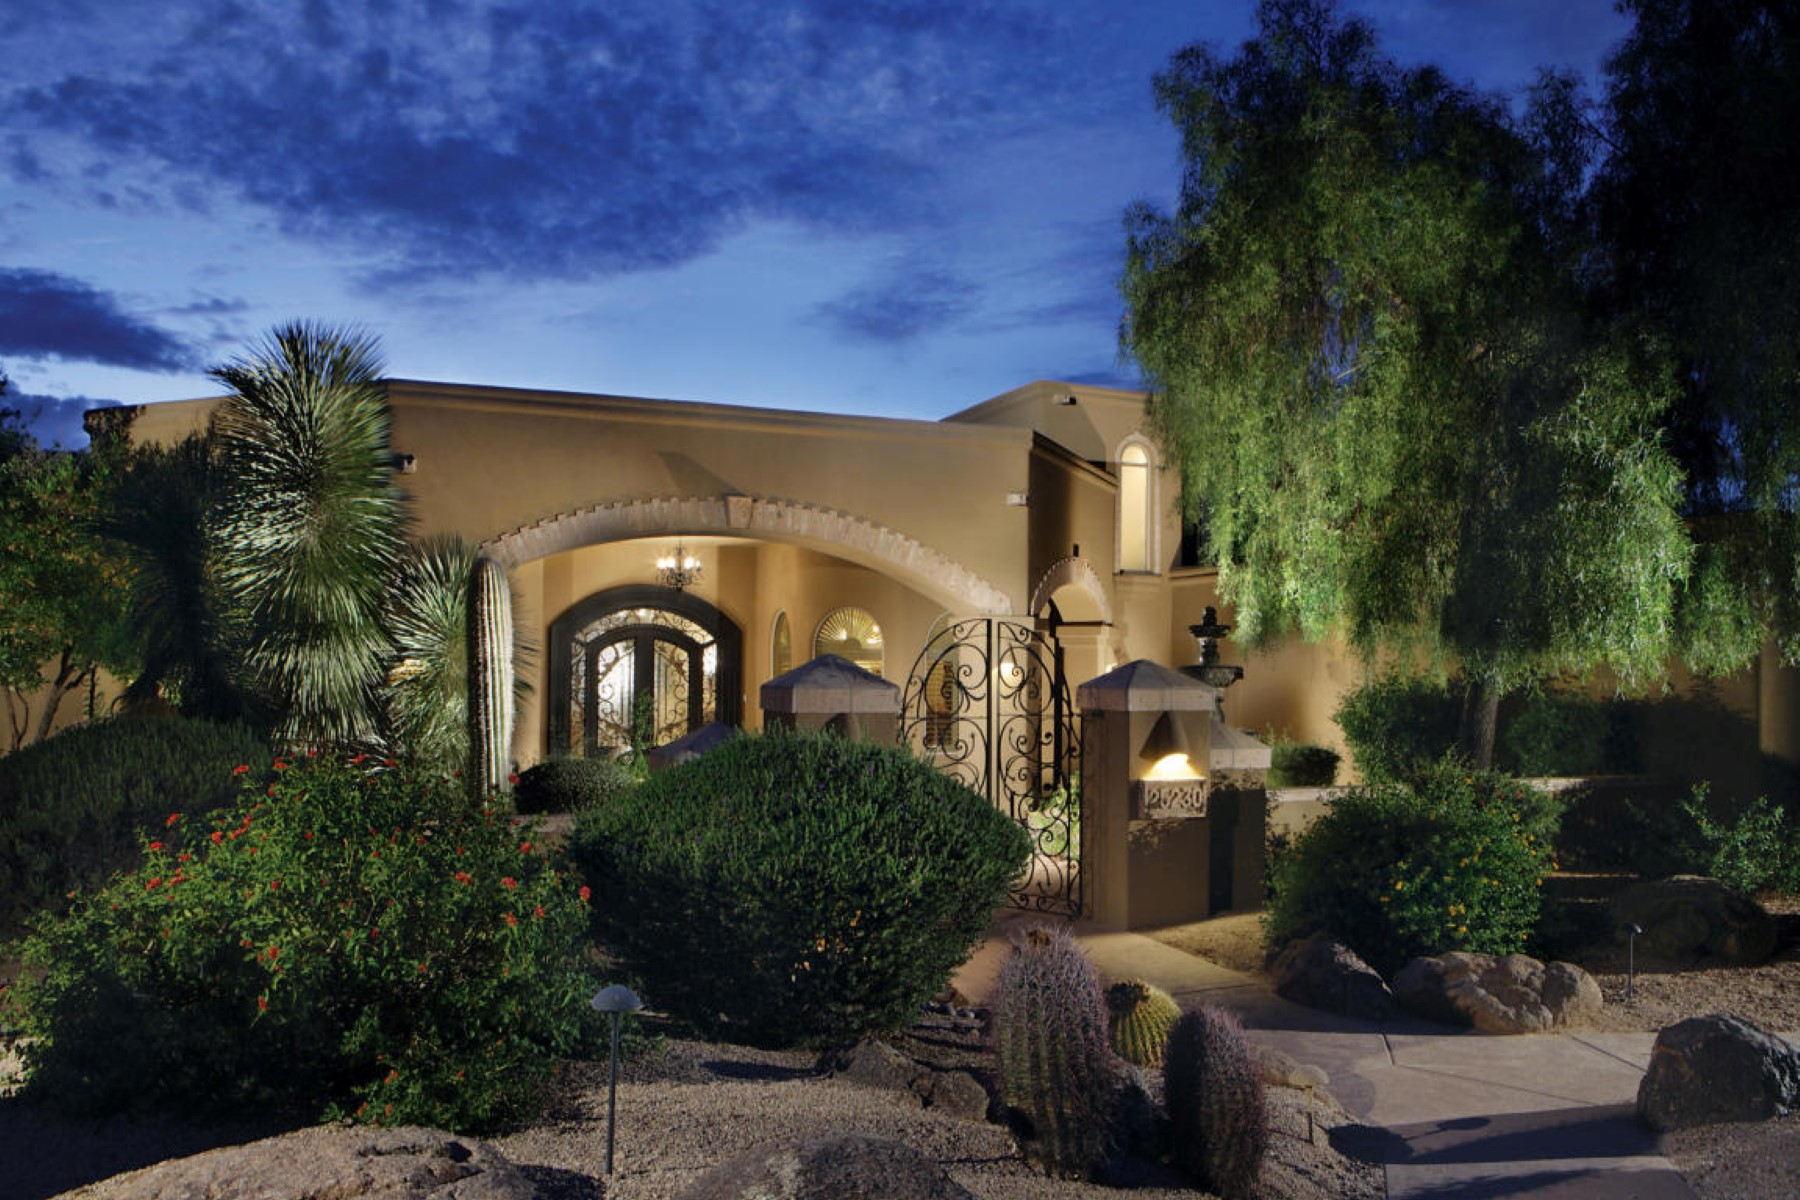 sales property at Desert Skyline Estates is one of North Scottsdale's desirable gated communities